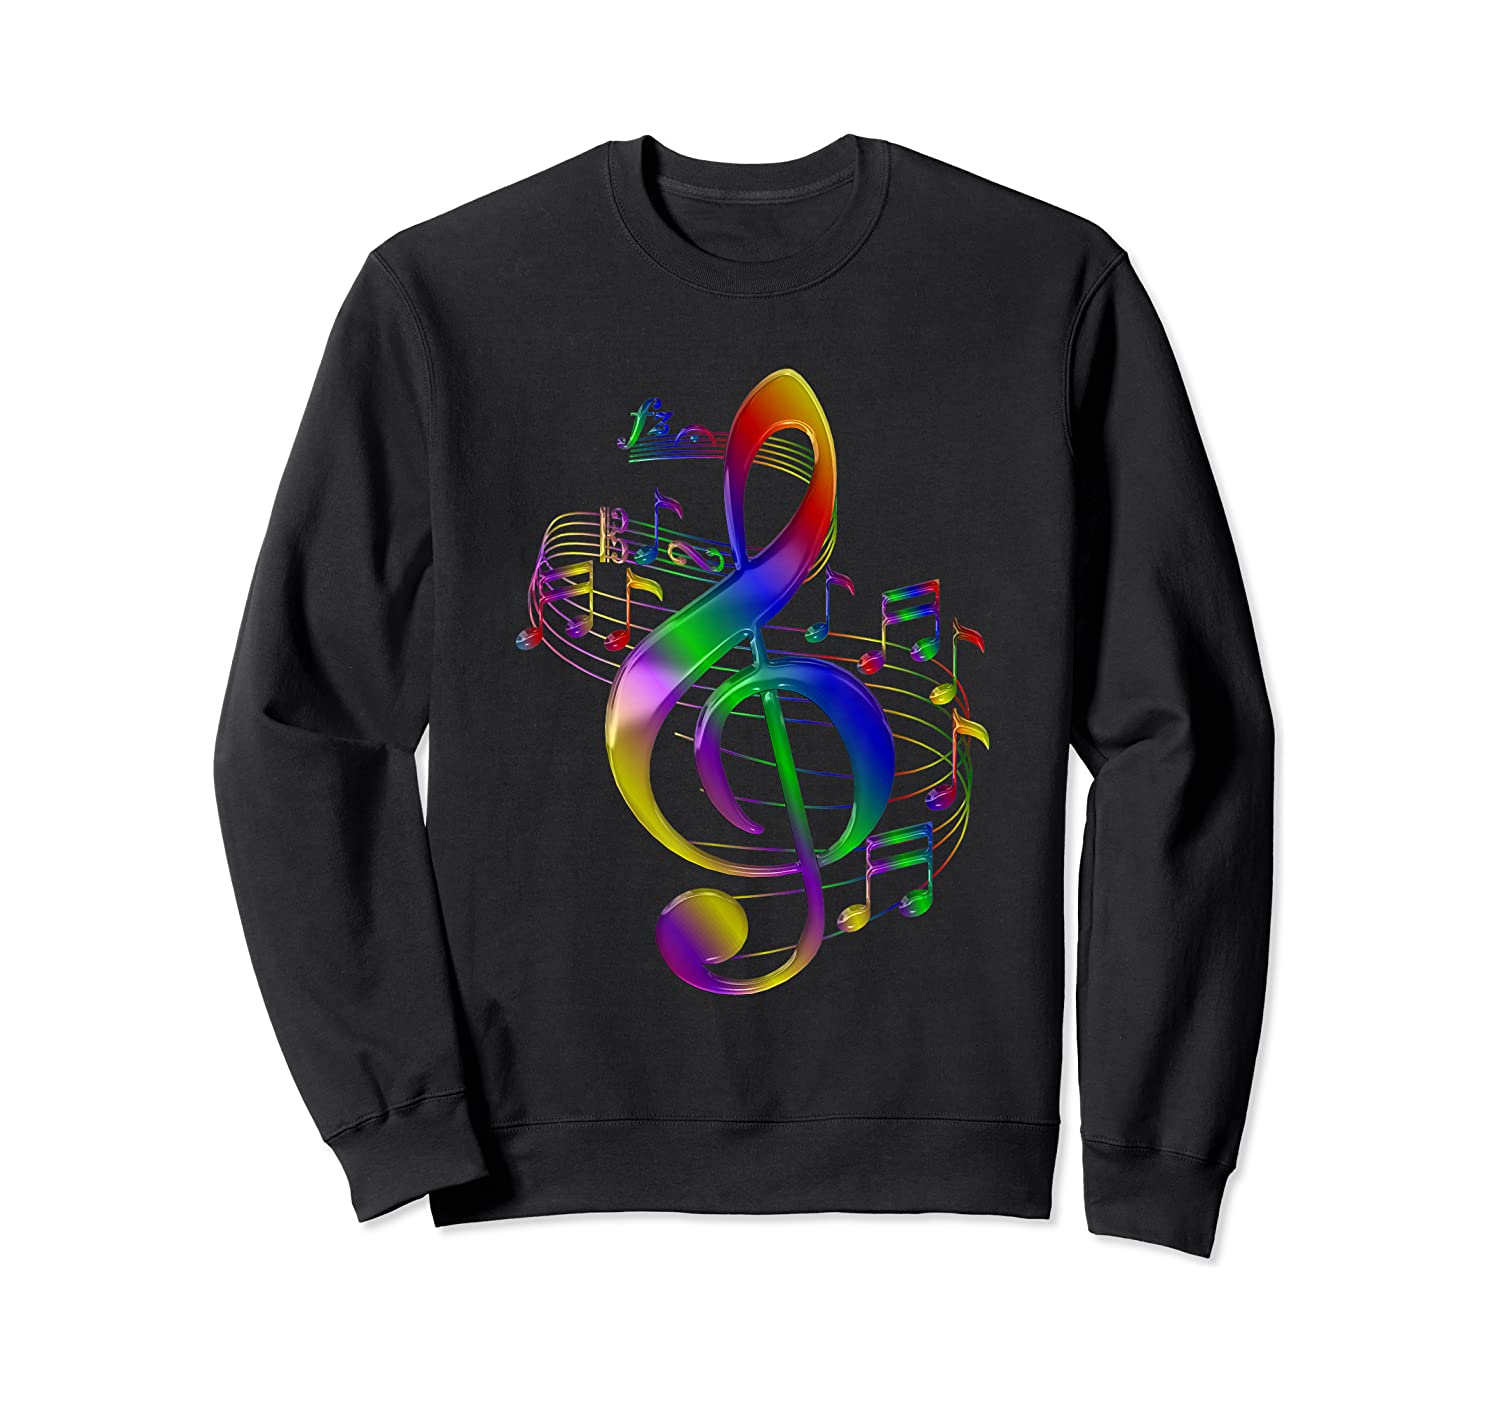 Treble Clef With Music Notes Shirts Crewneck Sweater